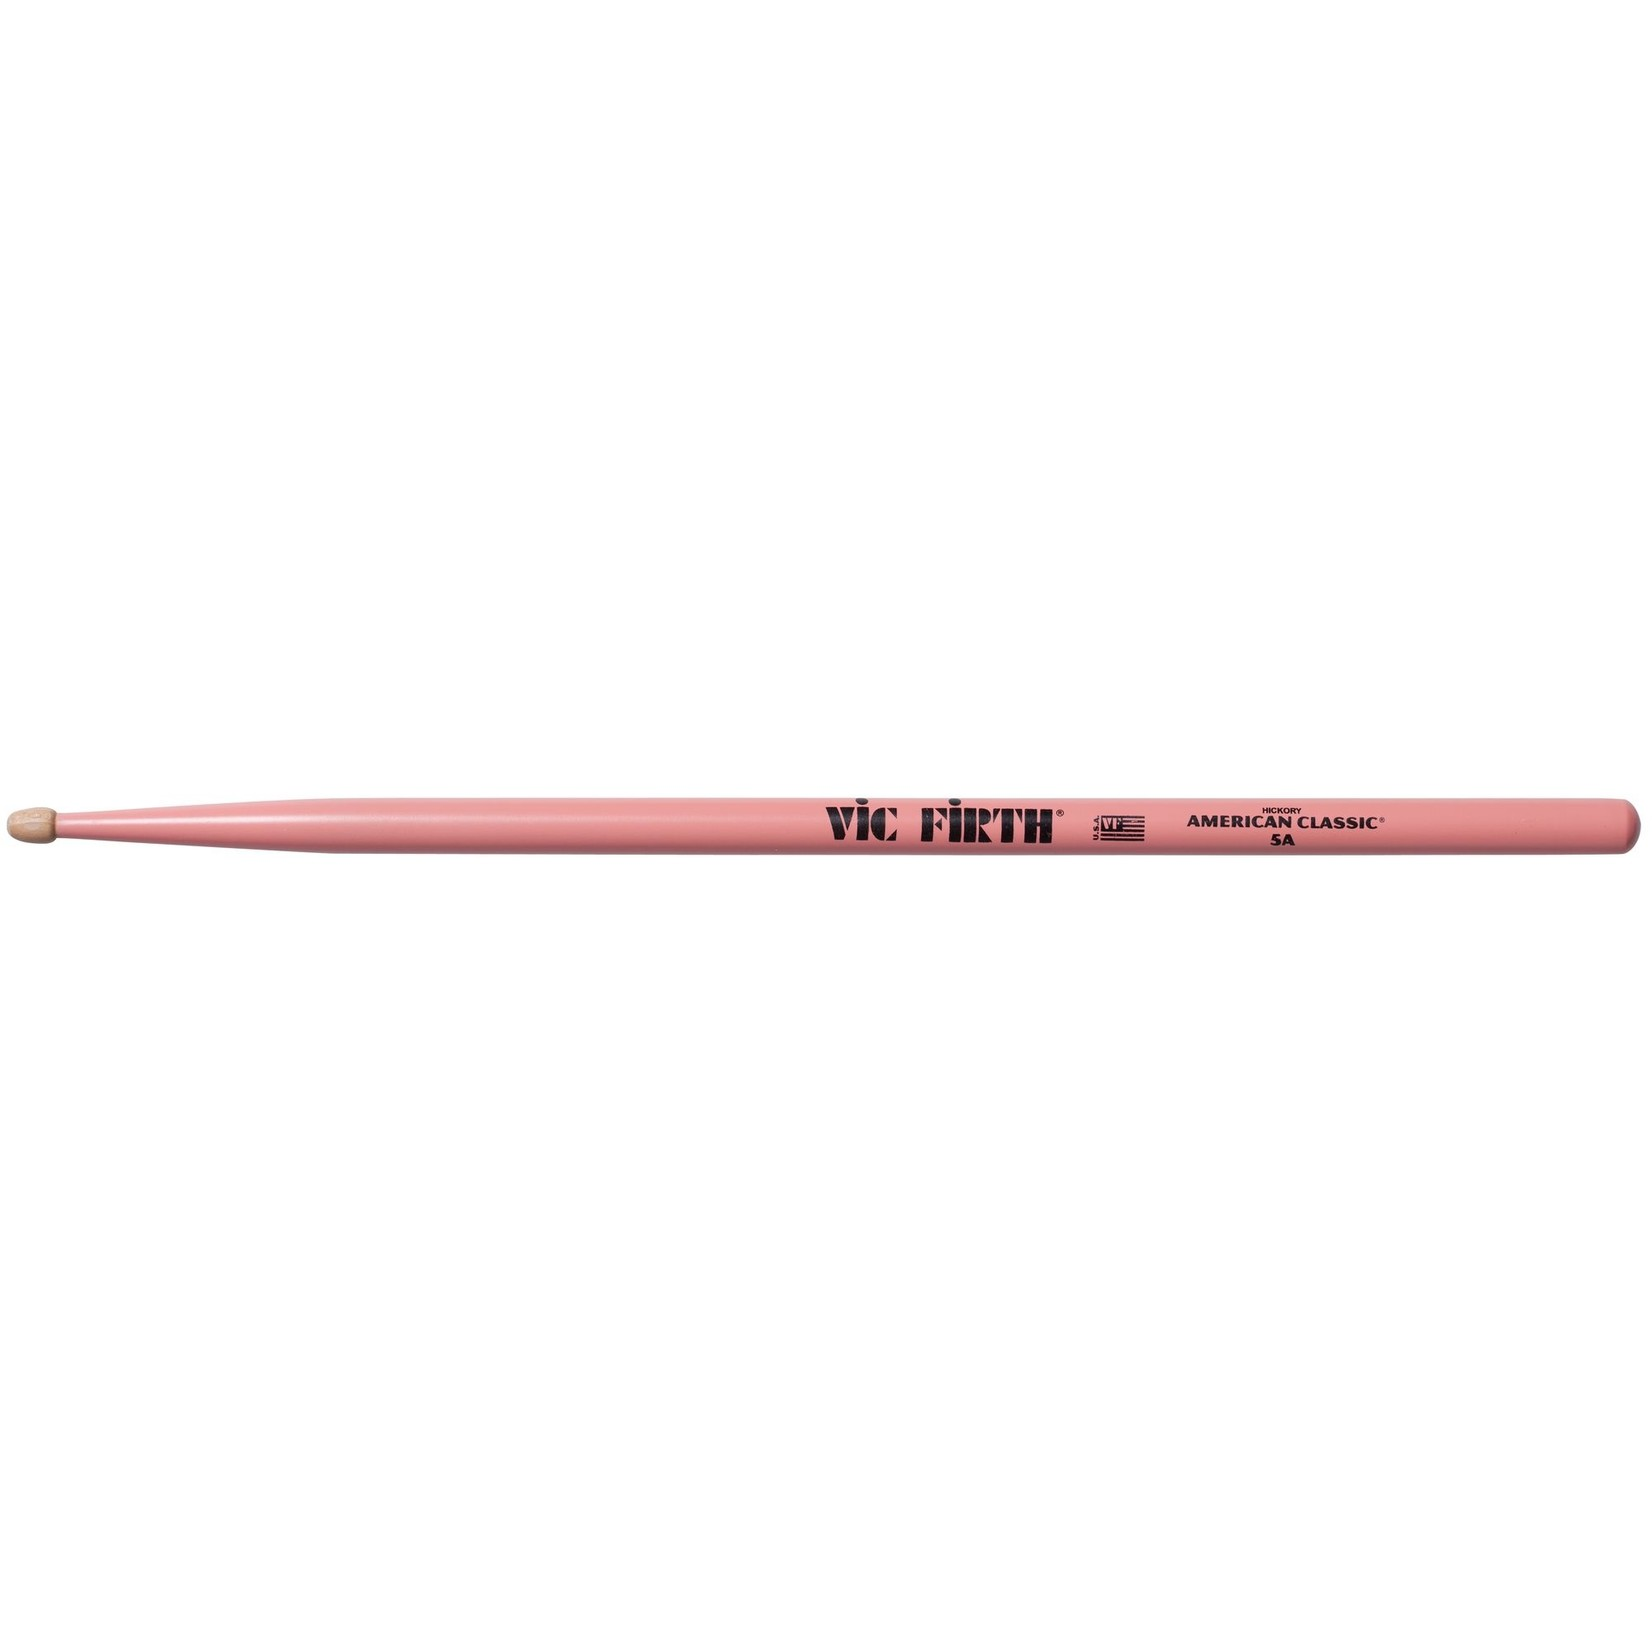 Vic Firth Vic Firth American Classic® 5A w/ PINK FINISH